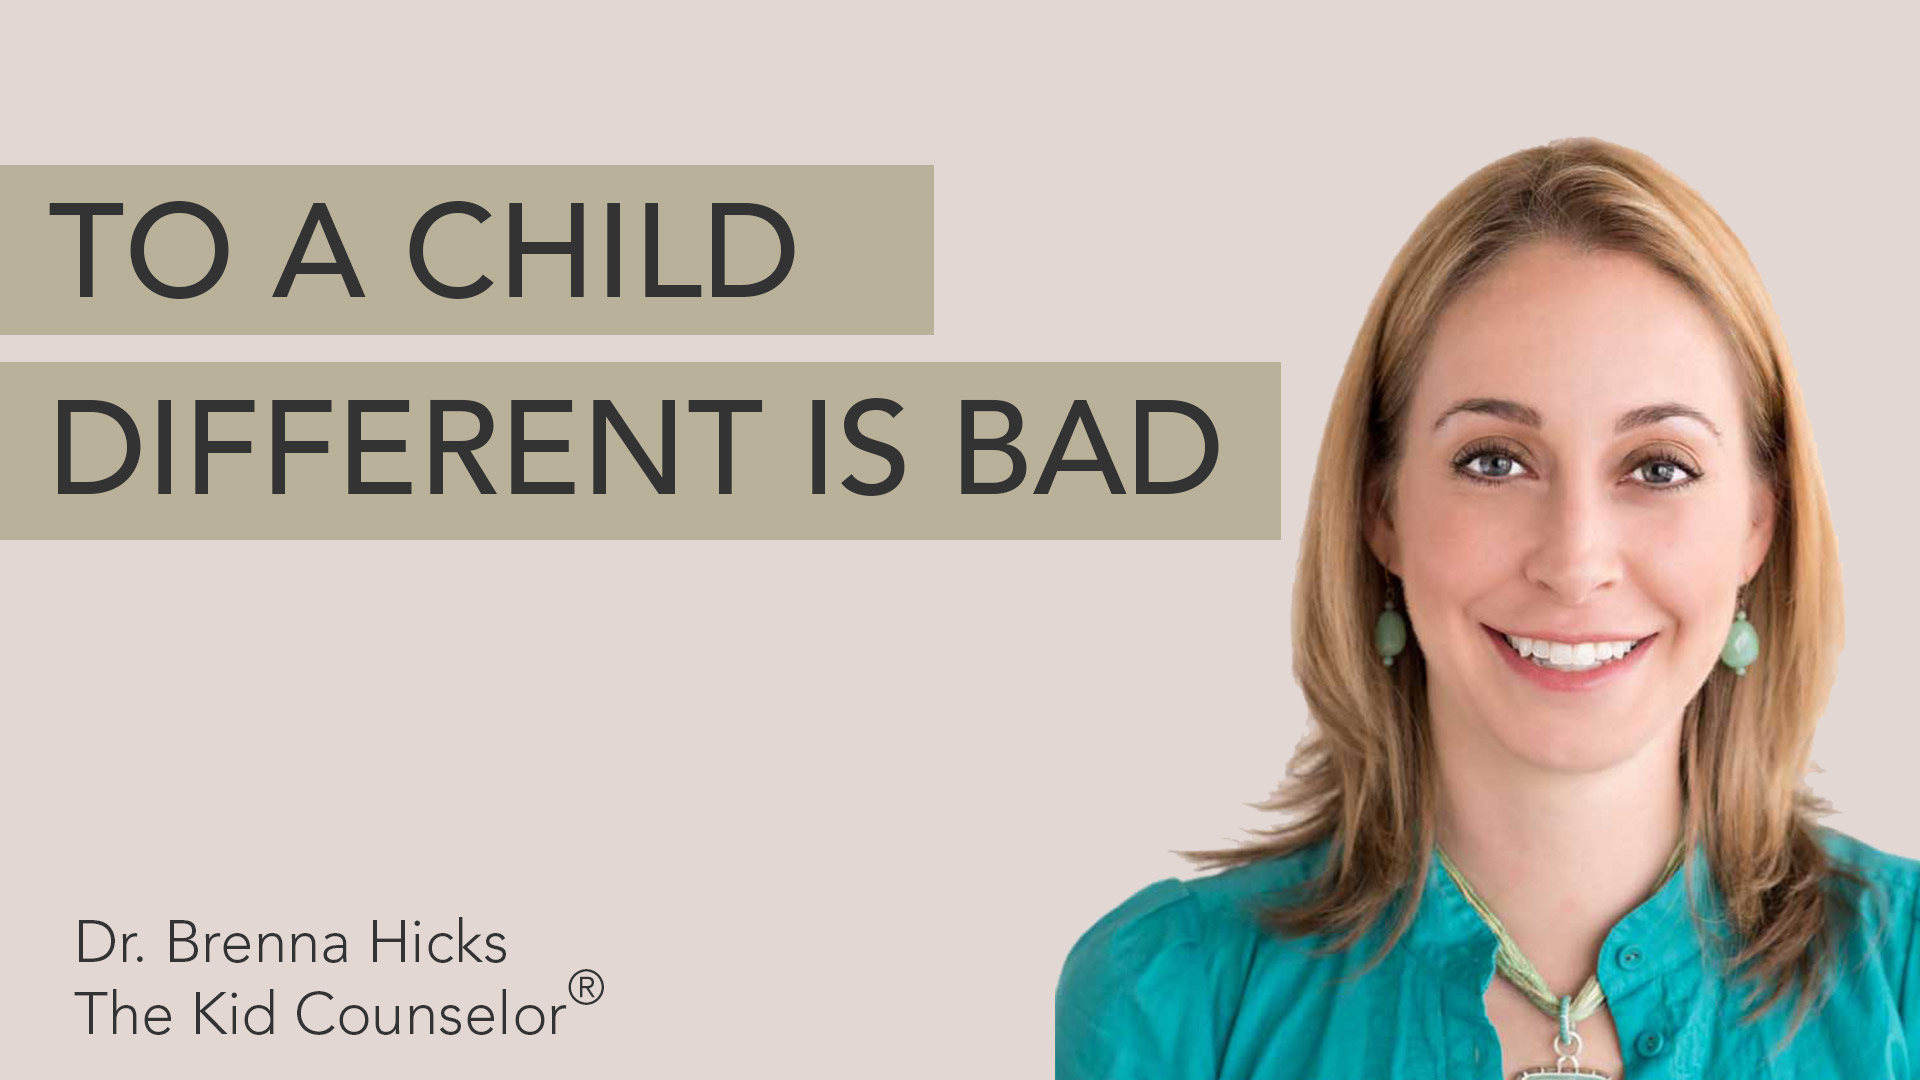 To a Child, Different is Bad